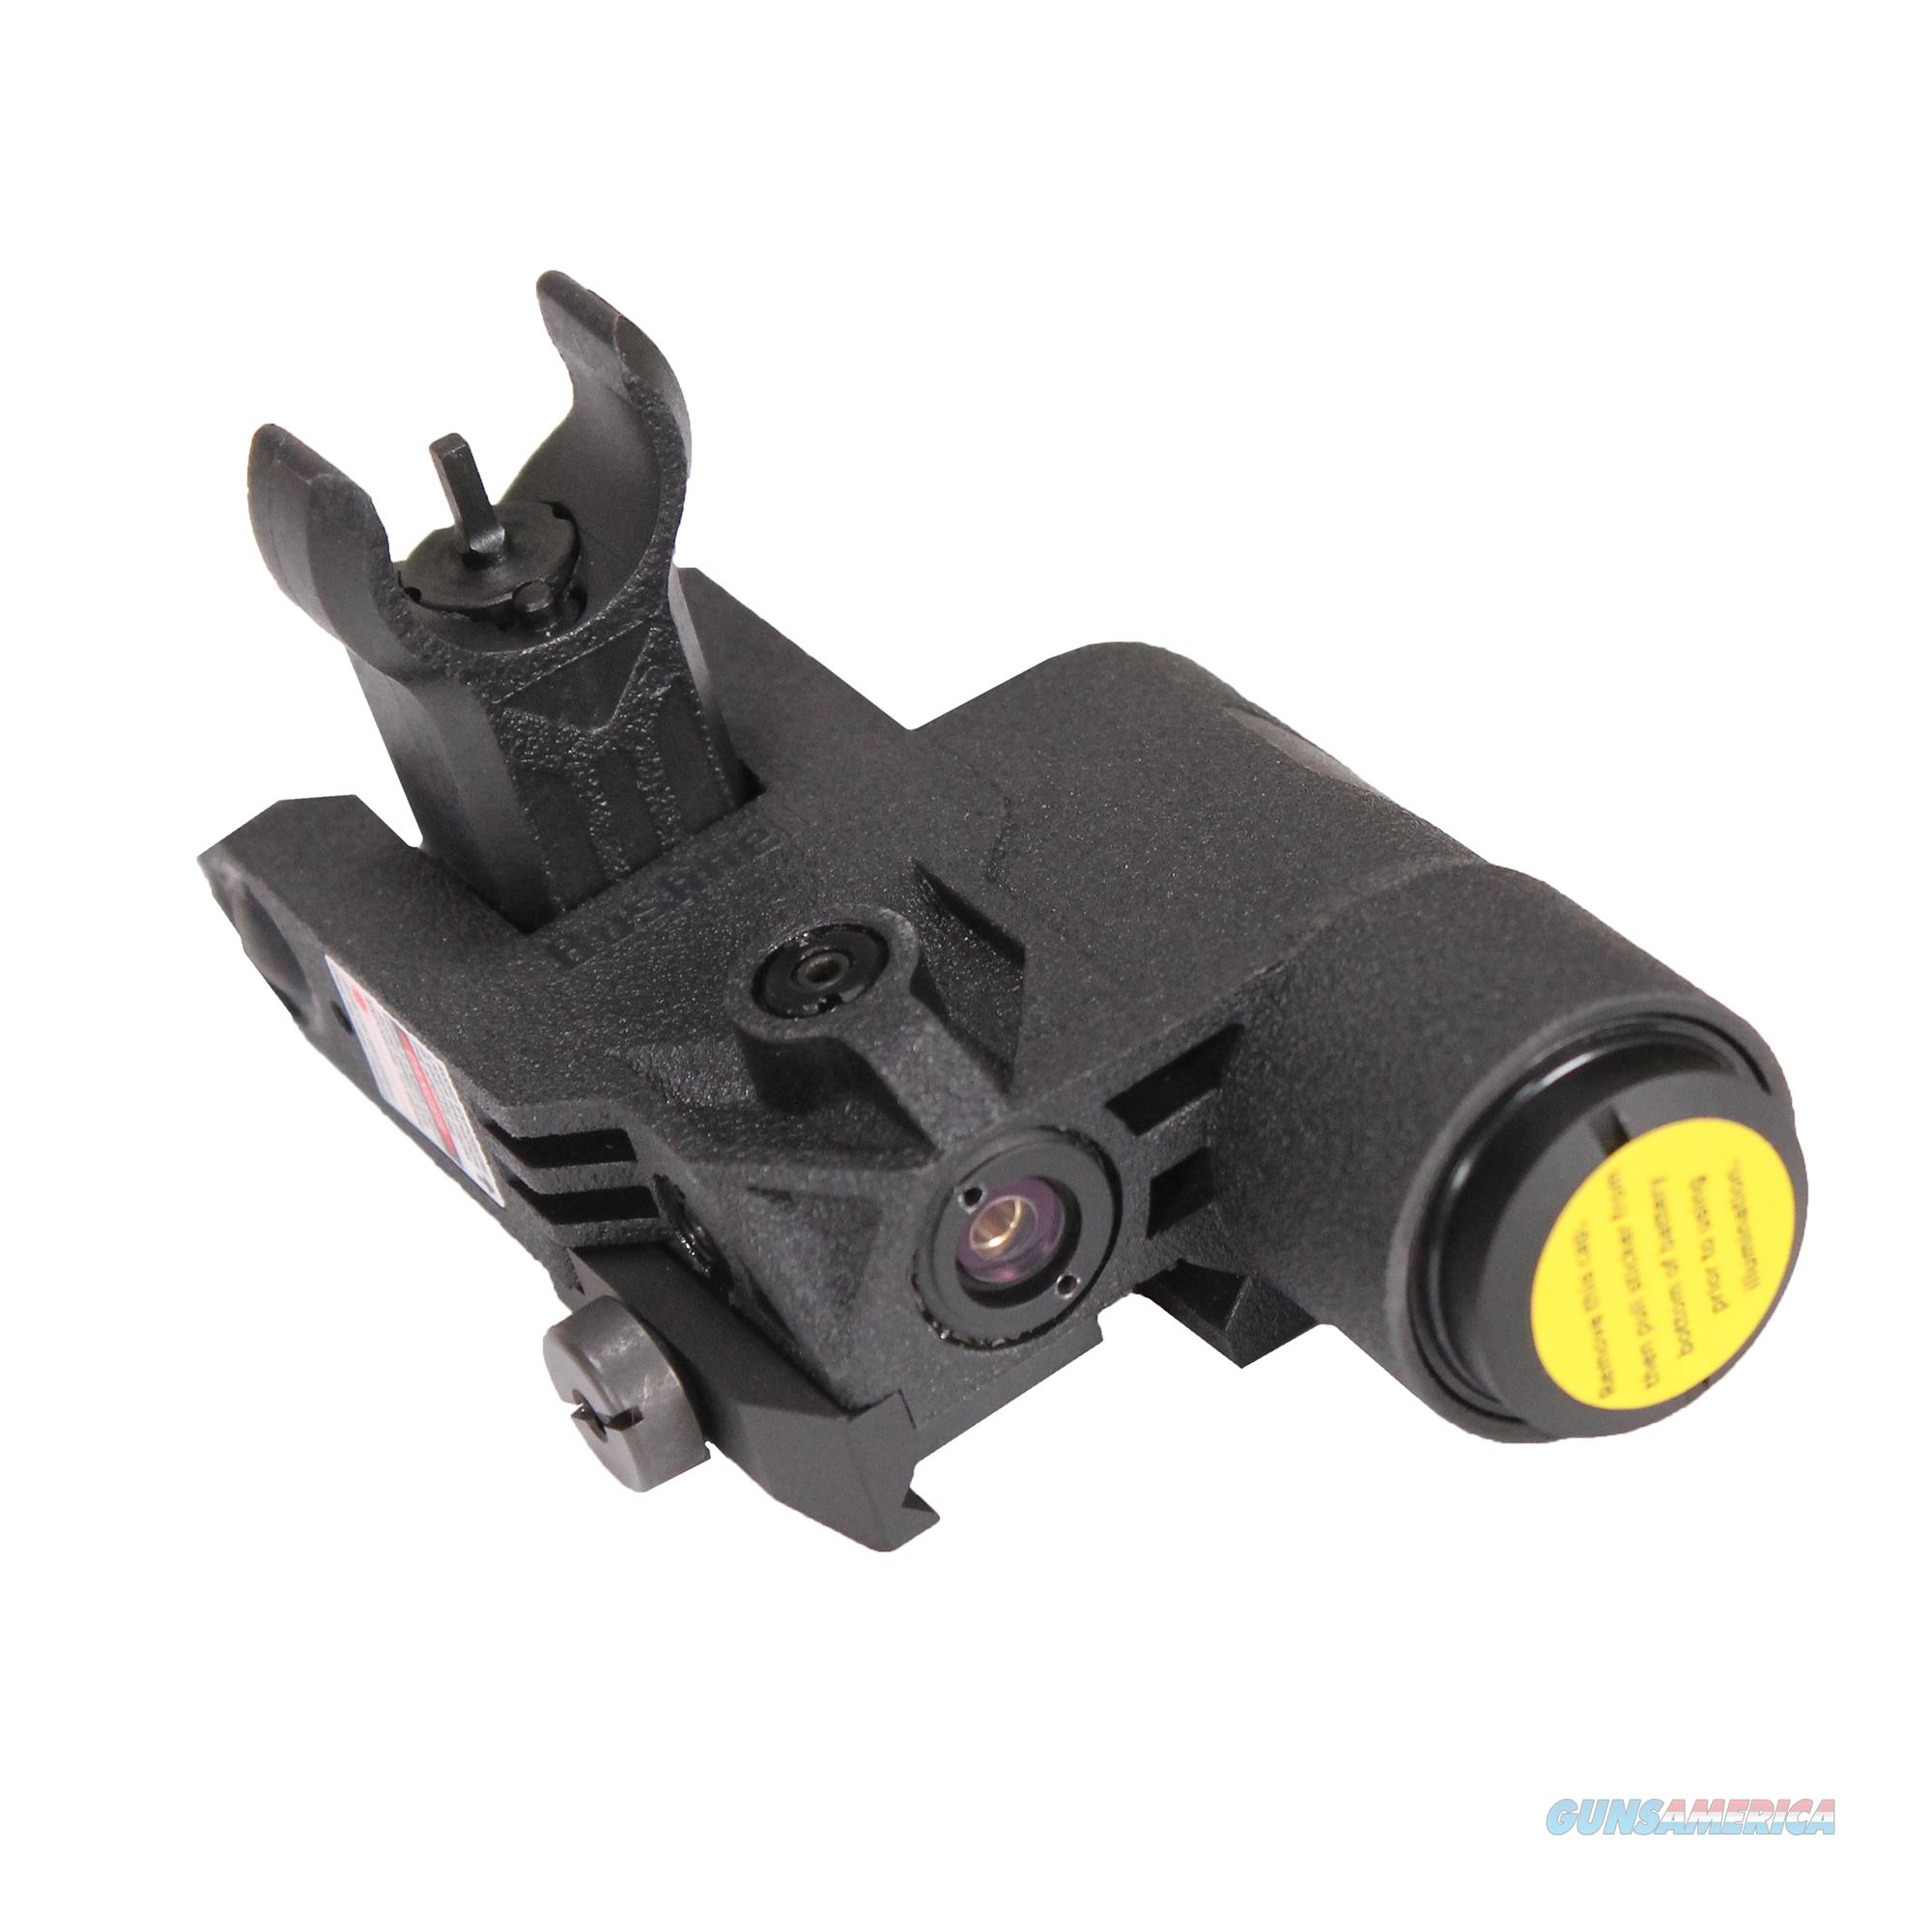 Bushnell Ar Optics Chase Flip-Up Front Sight Ar-15, Integrated Red Laser Sight, Matte Blk AR1002BR  Non-Guns > Iron/Metal/Peep Sights